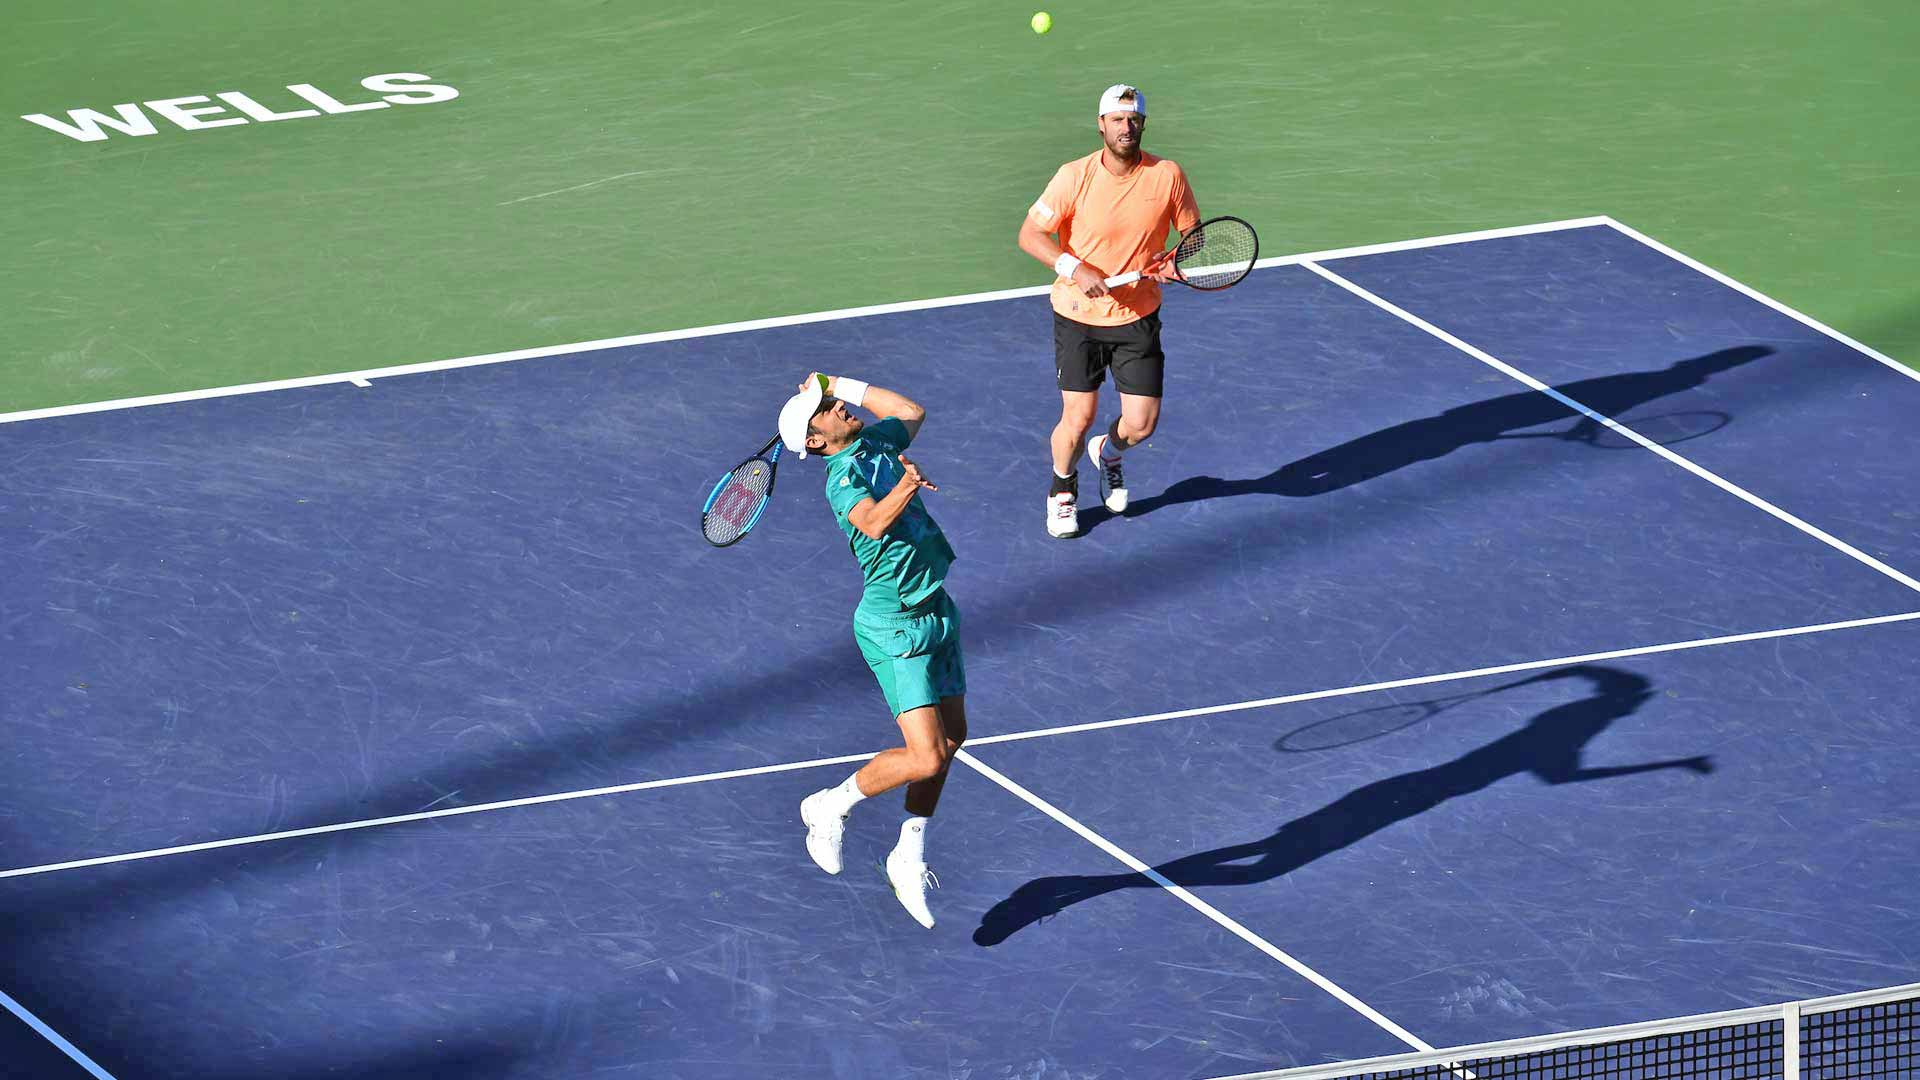 Mate Pavic and Oliver Marach compete in the quarter-finals of the BNP Paribas Open.